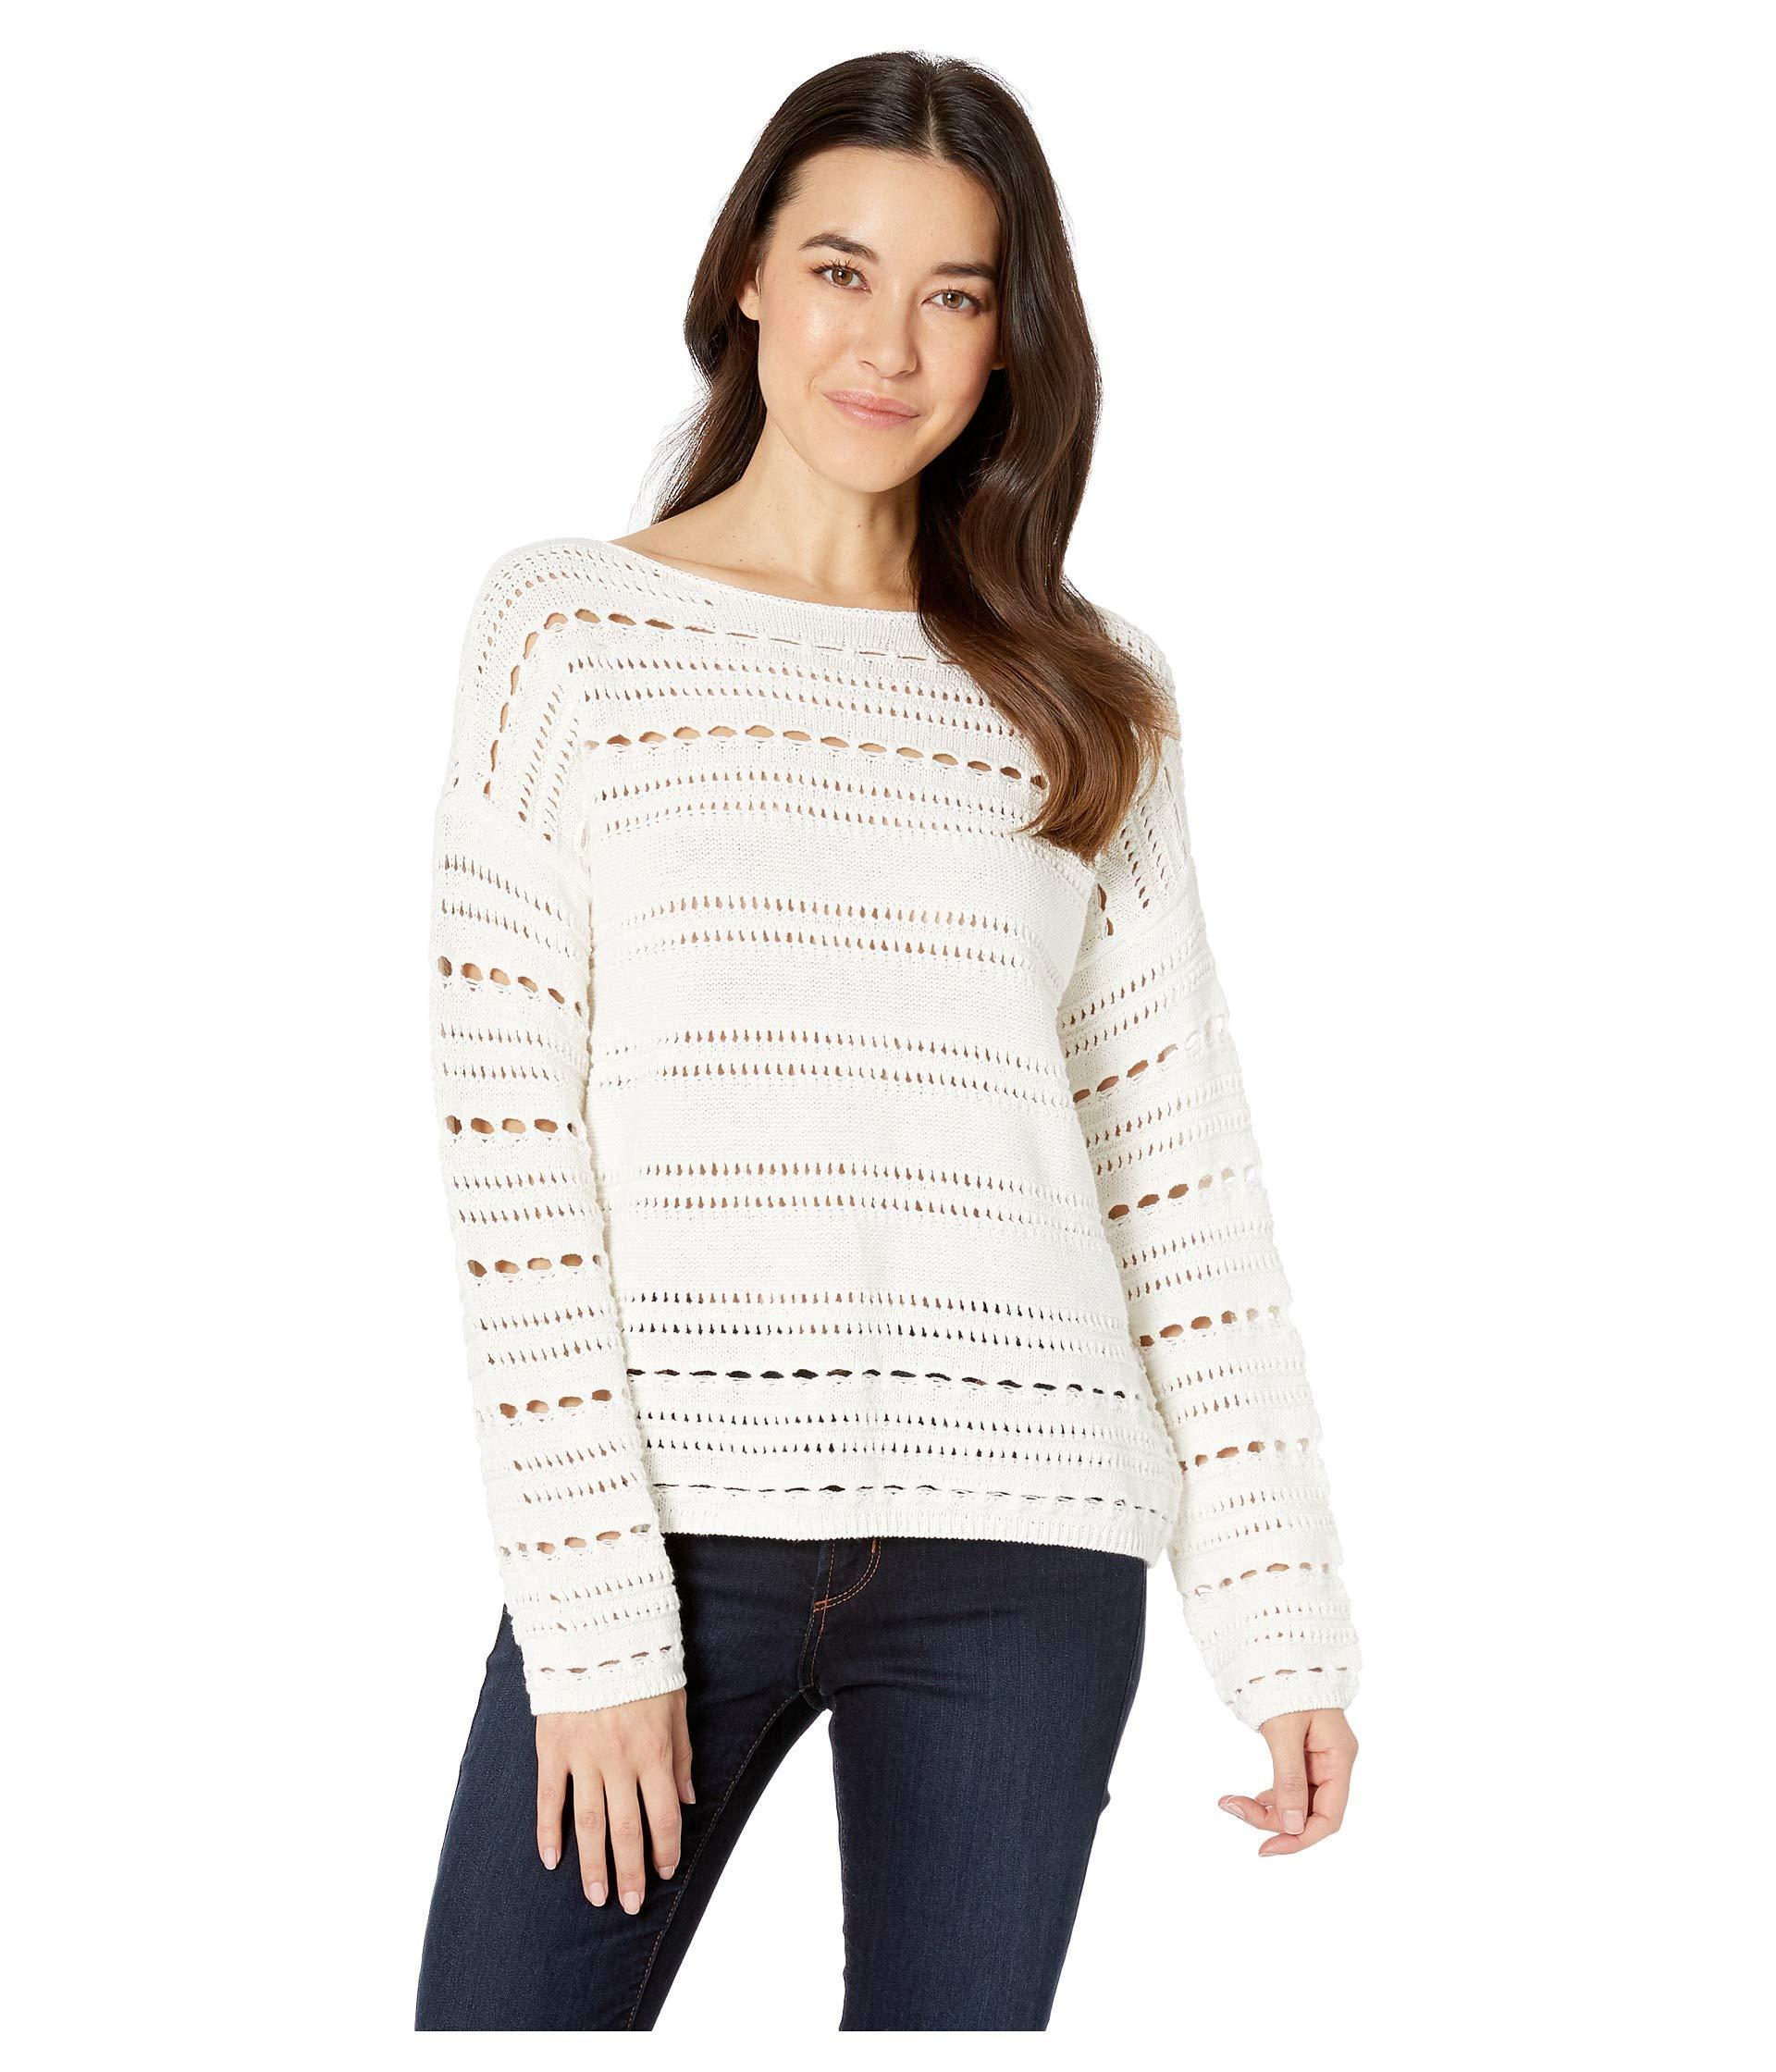 c08bd4ff3dc8c Lyst - Two By Vince Camuto Long Sleeve Open Stitch Cotton Sweater ...